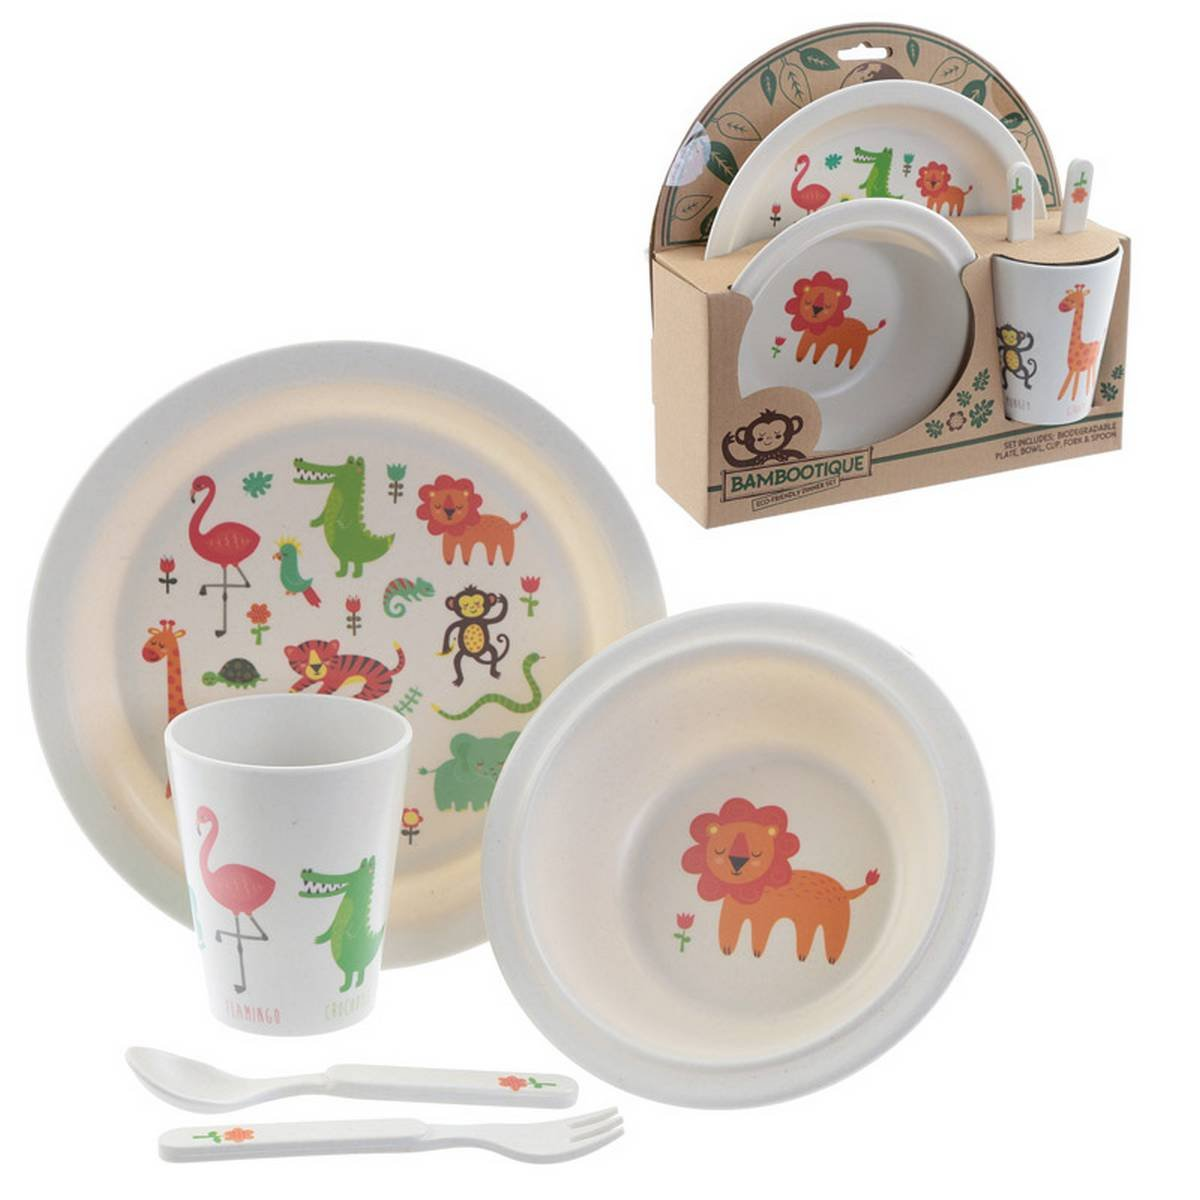 Bambootique Eco Friendly Zoo Design Picnic Set Product Code BAMB01